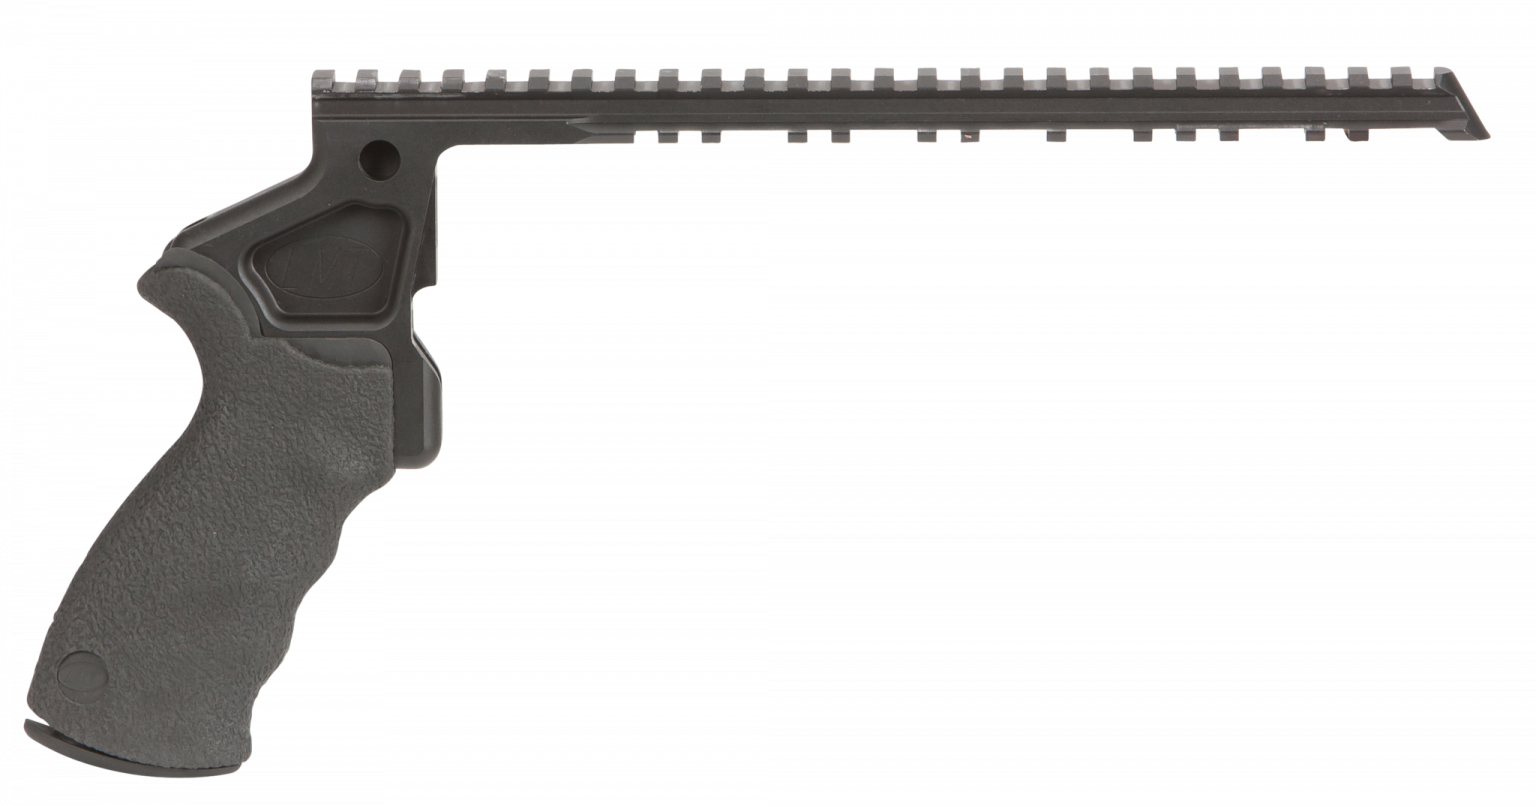 Short Rail Mount Pistol Grip Frame